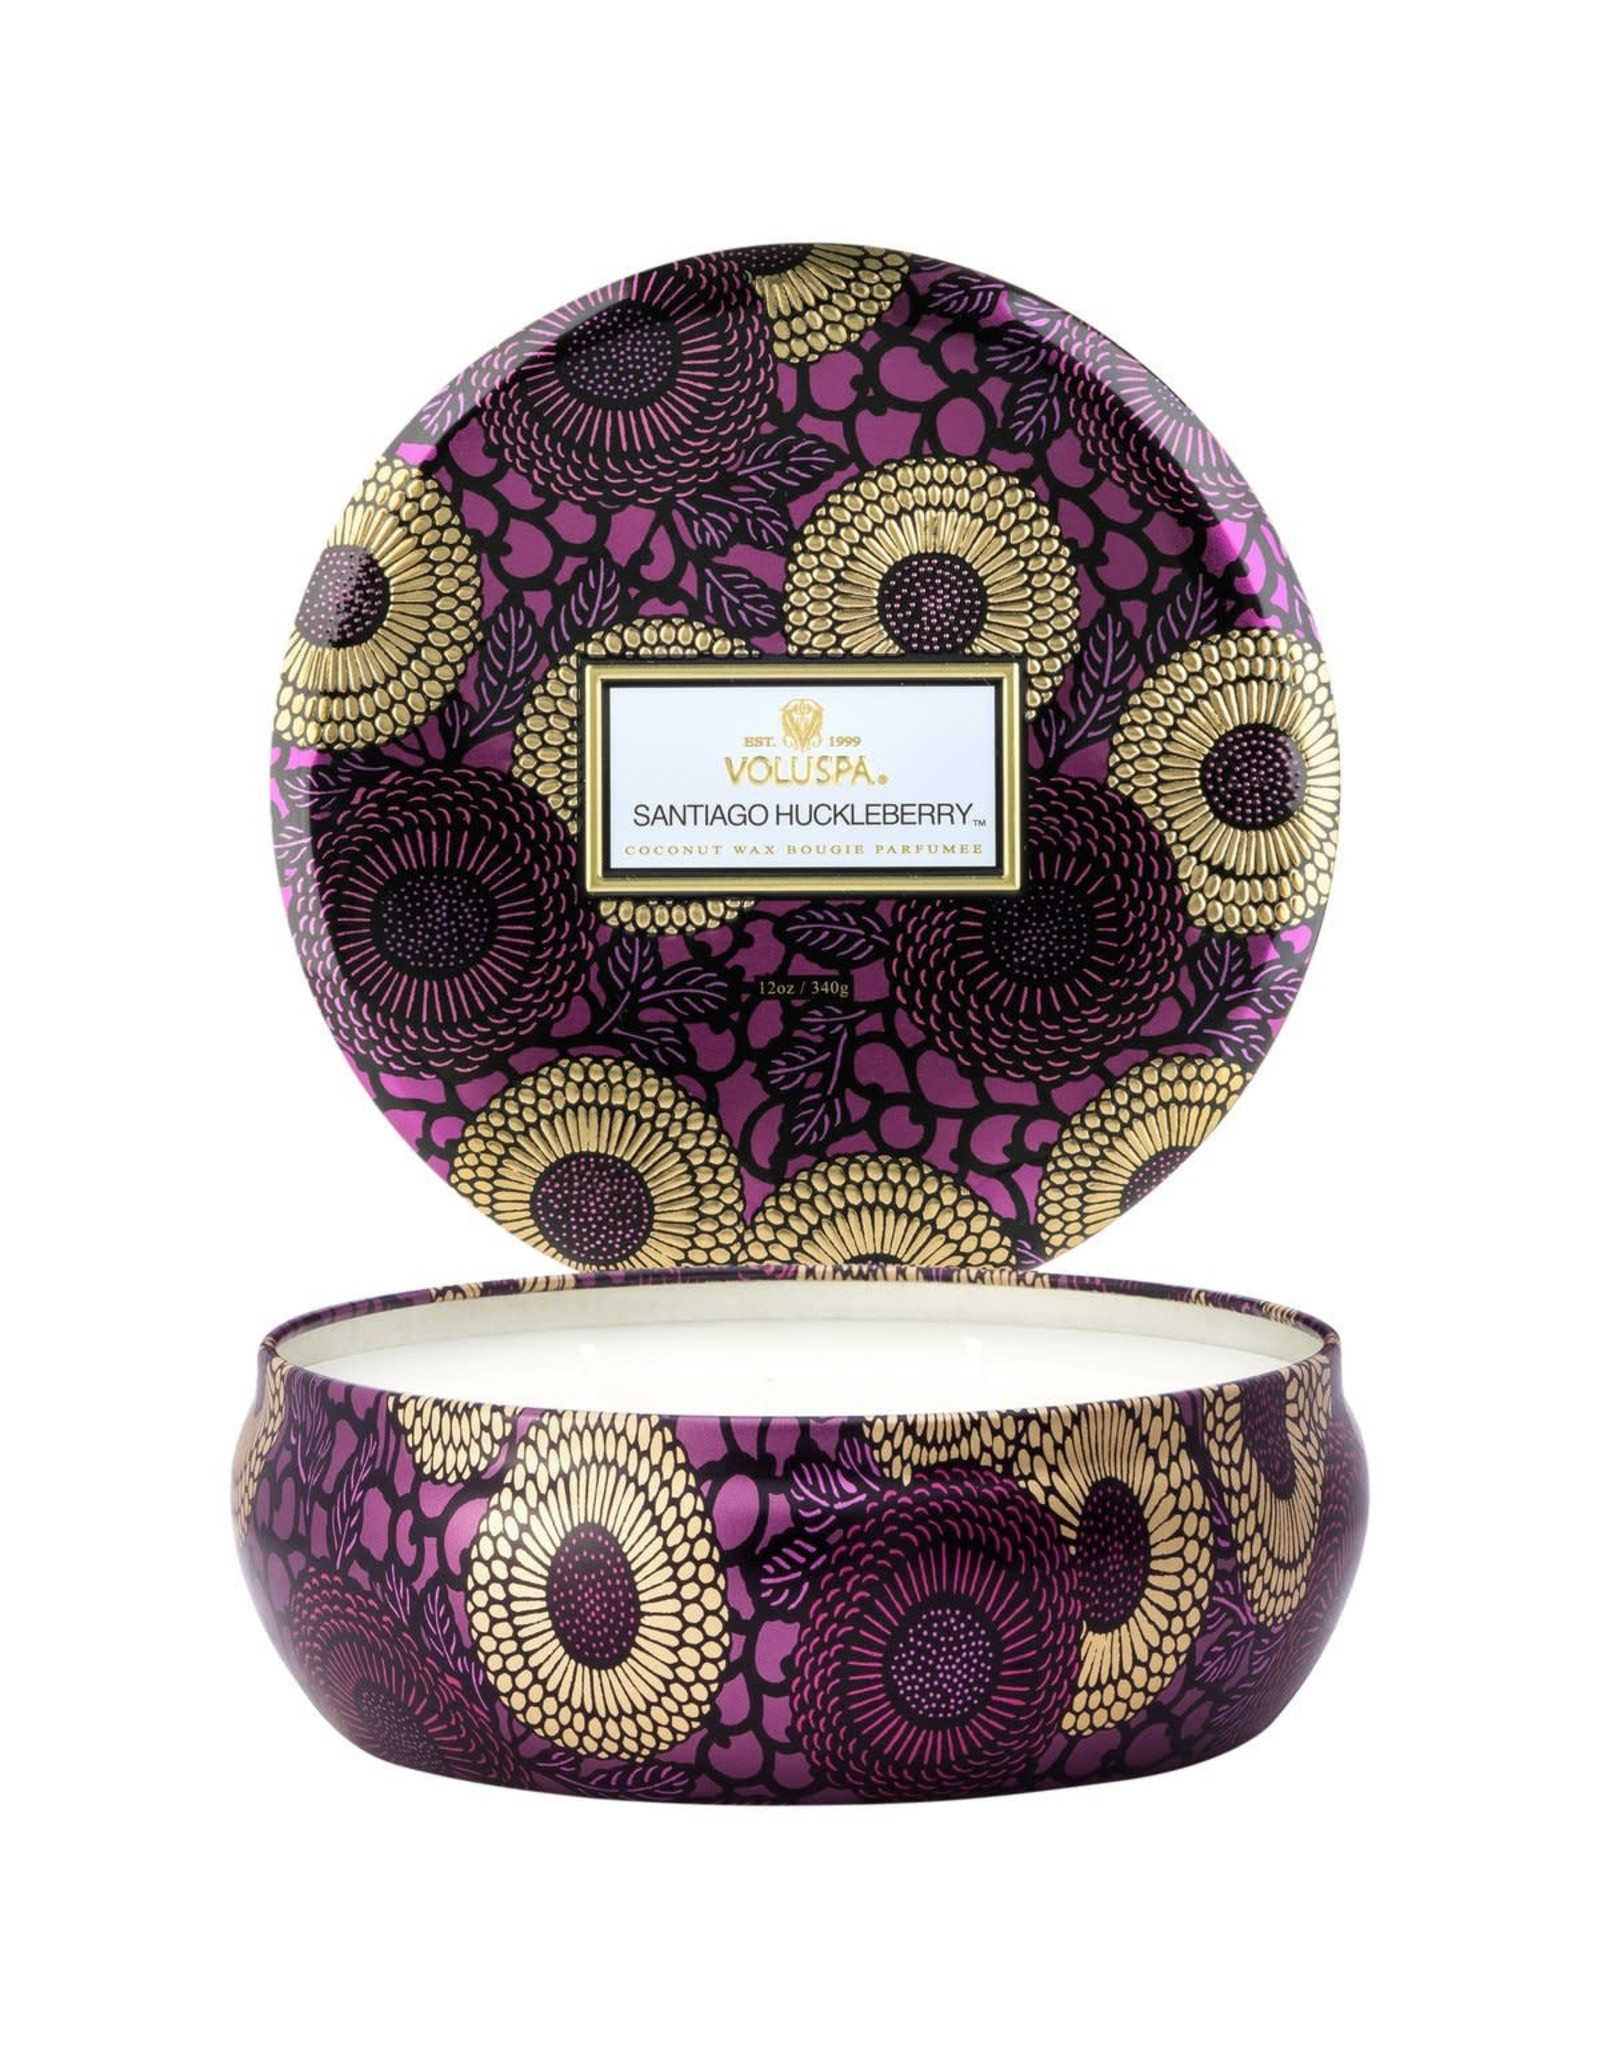 Voluspa Santiago Huckleberry - Candle